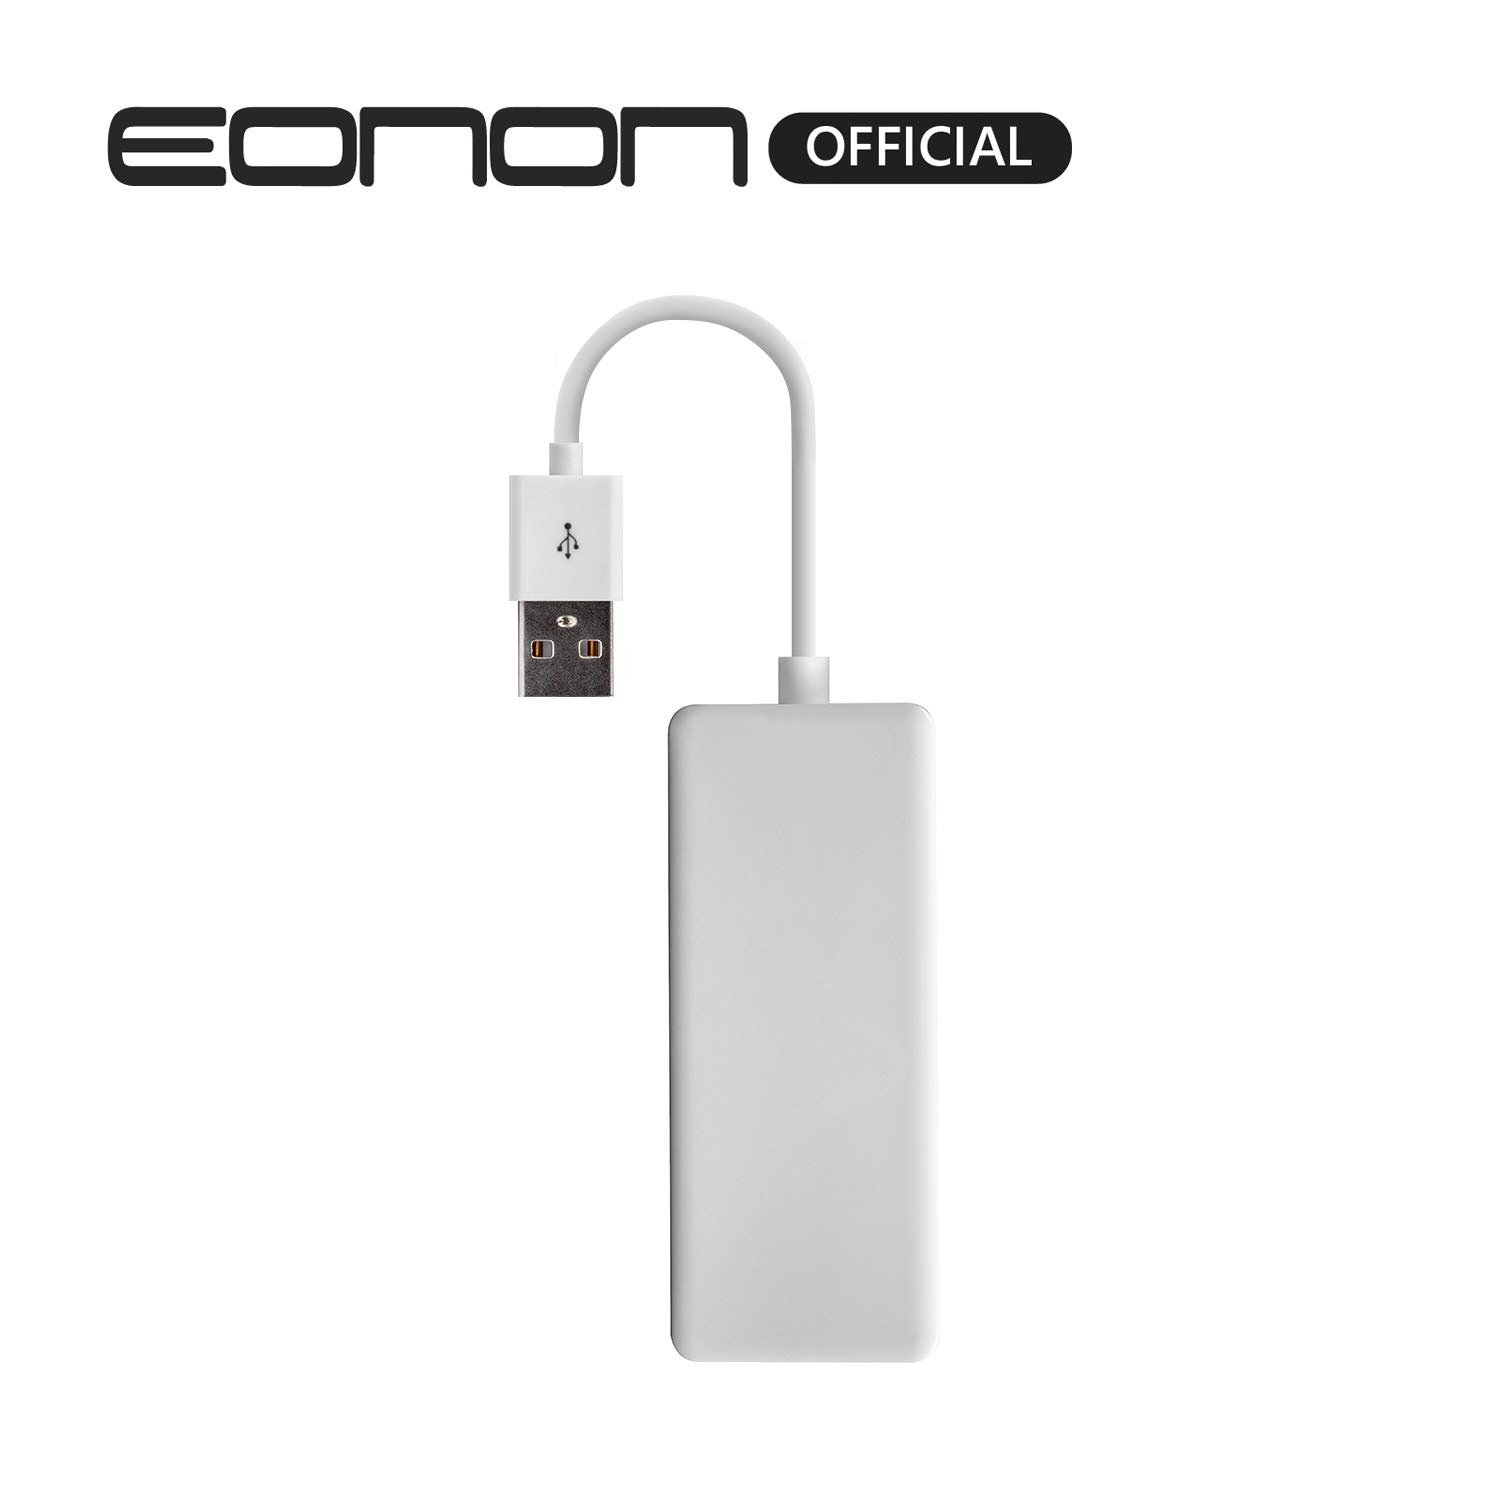 Eonon A0585 Android Auto and Car Play Autoplay Dongle for Eonon Android 8.0/8.1/9.0 Car Radio